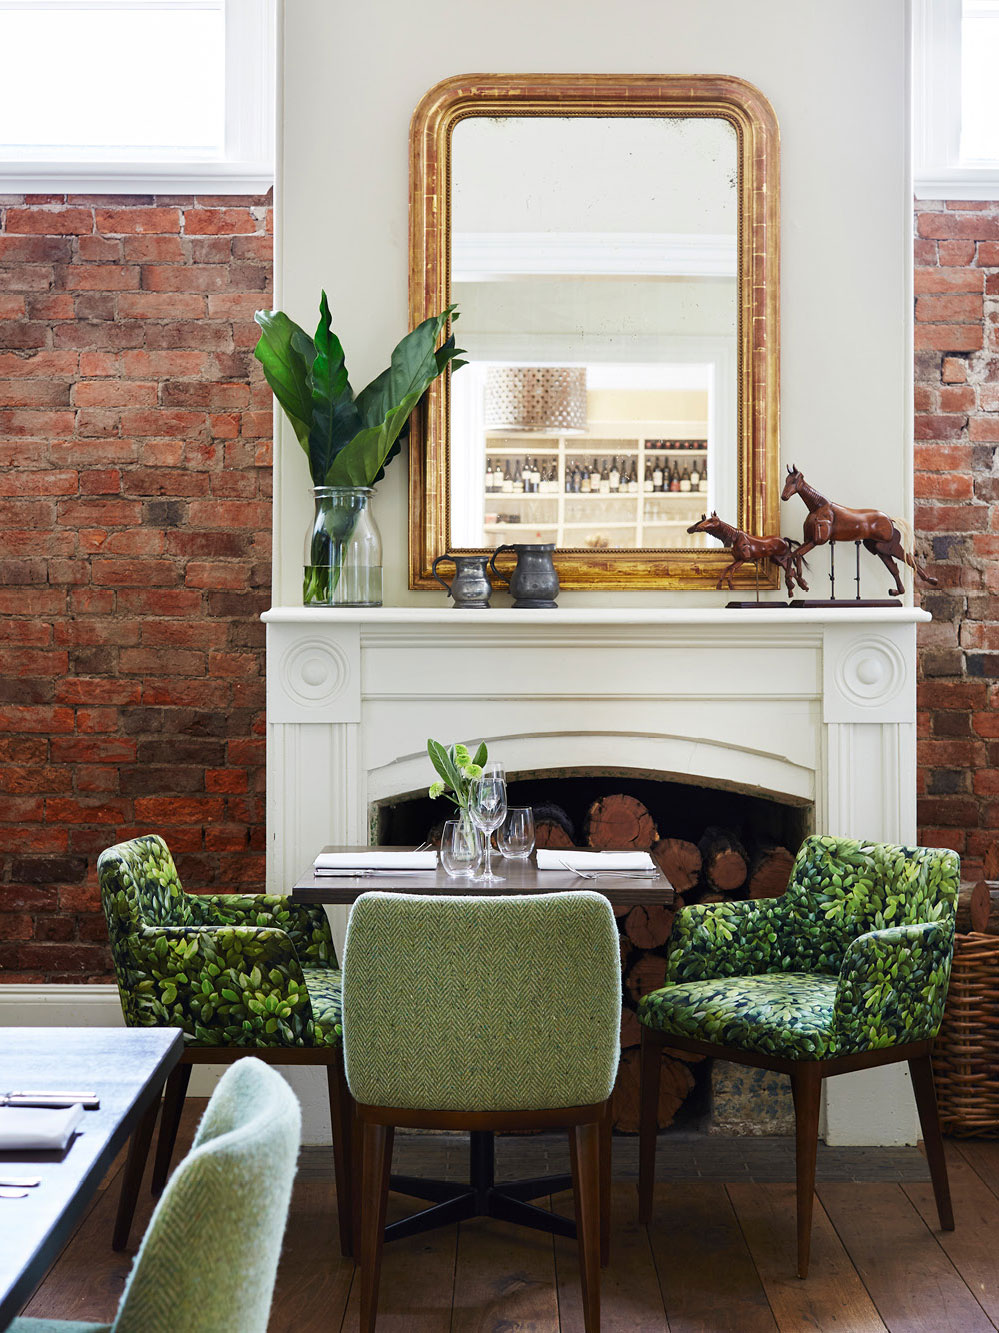 Adelaide-Bragg-Interiors-The-Cottage-Scone_web.jpg